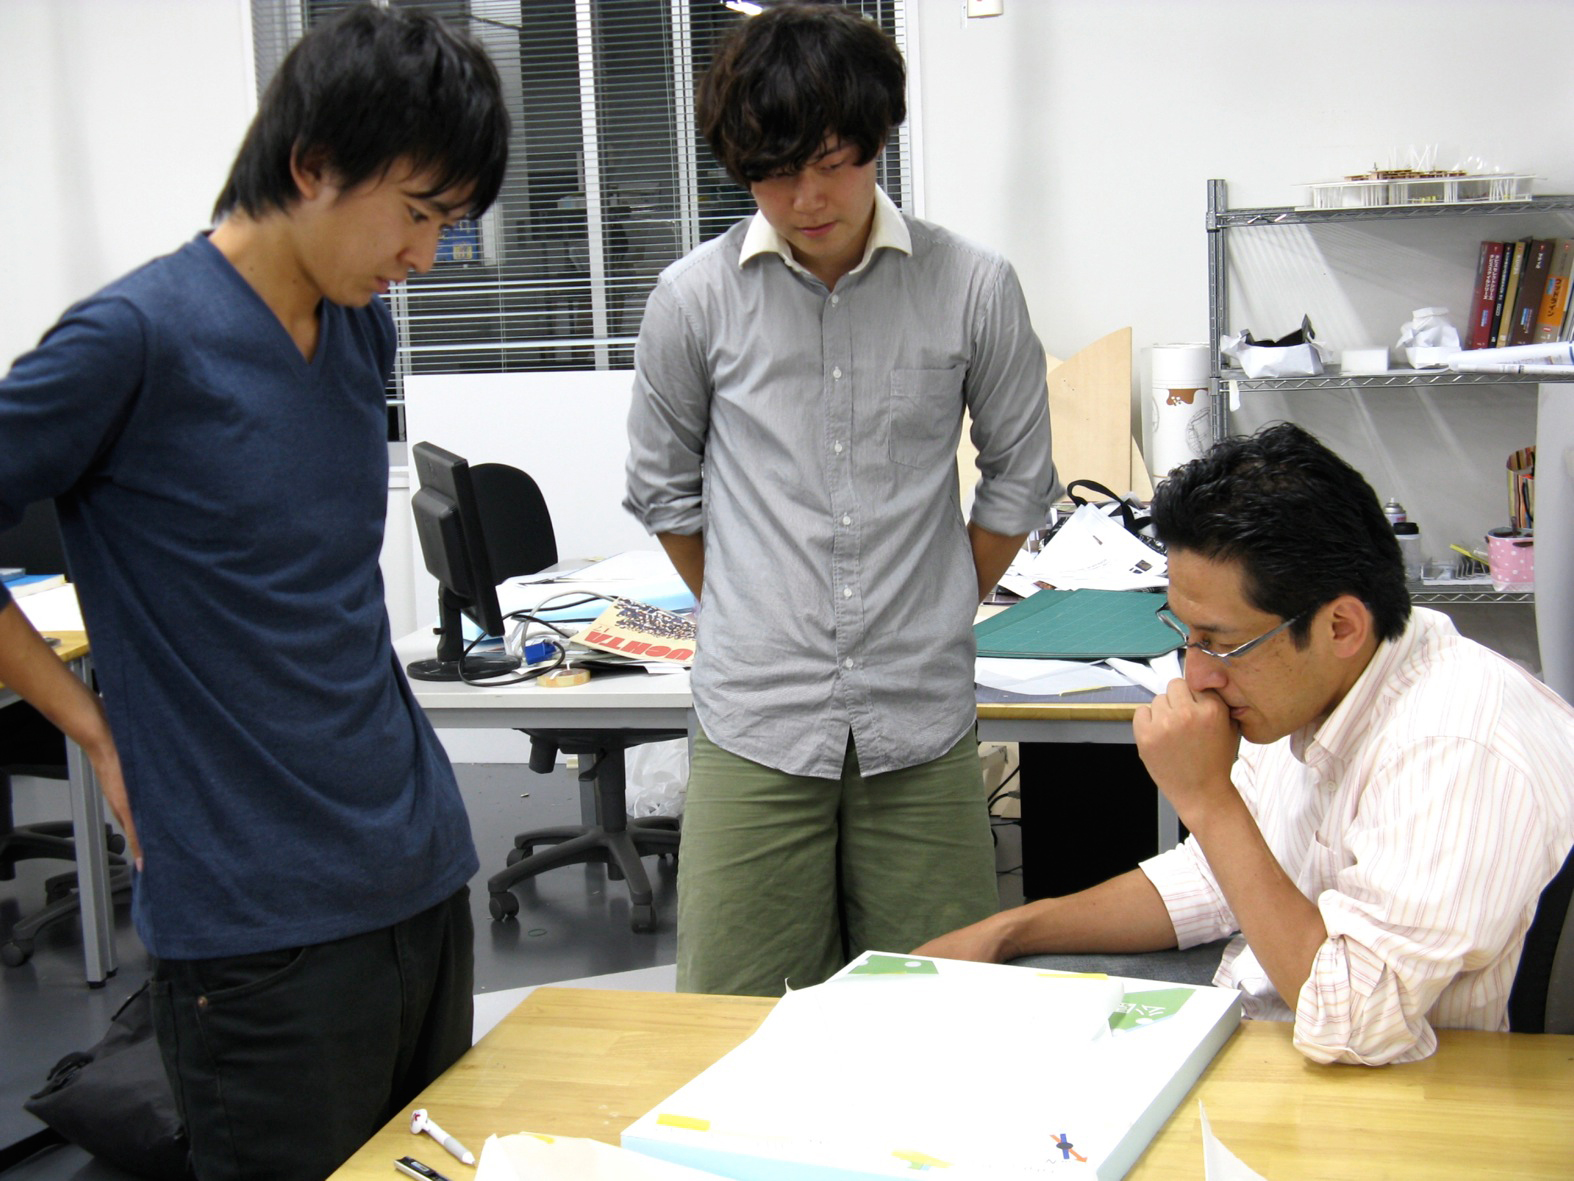 Yasuaki Onoda and his students at work on models for the reconstruction.